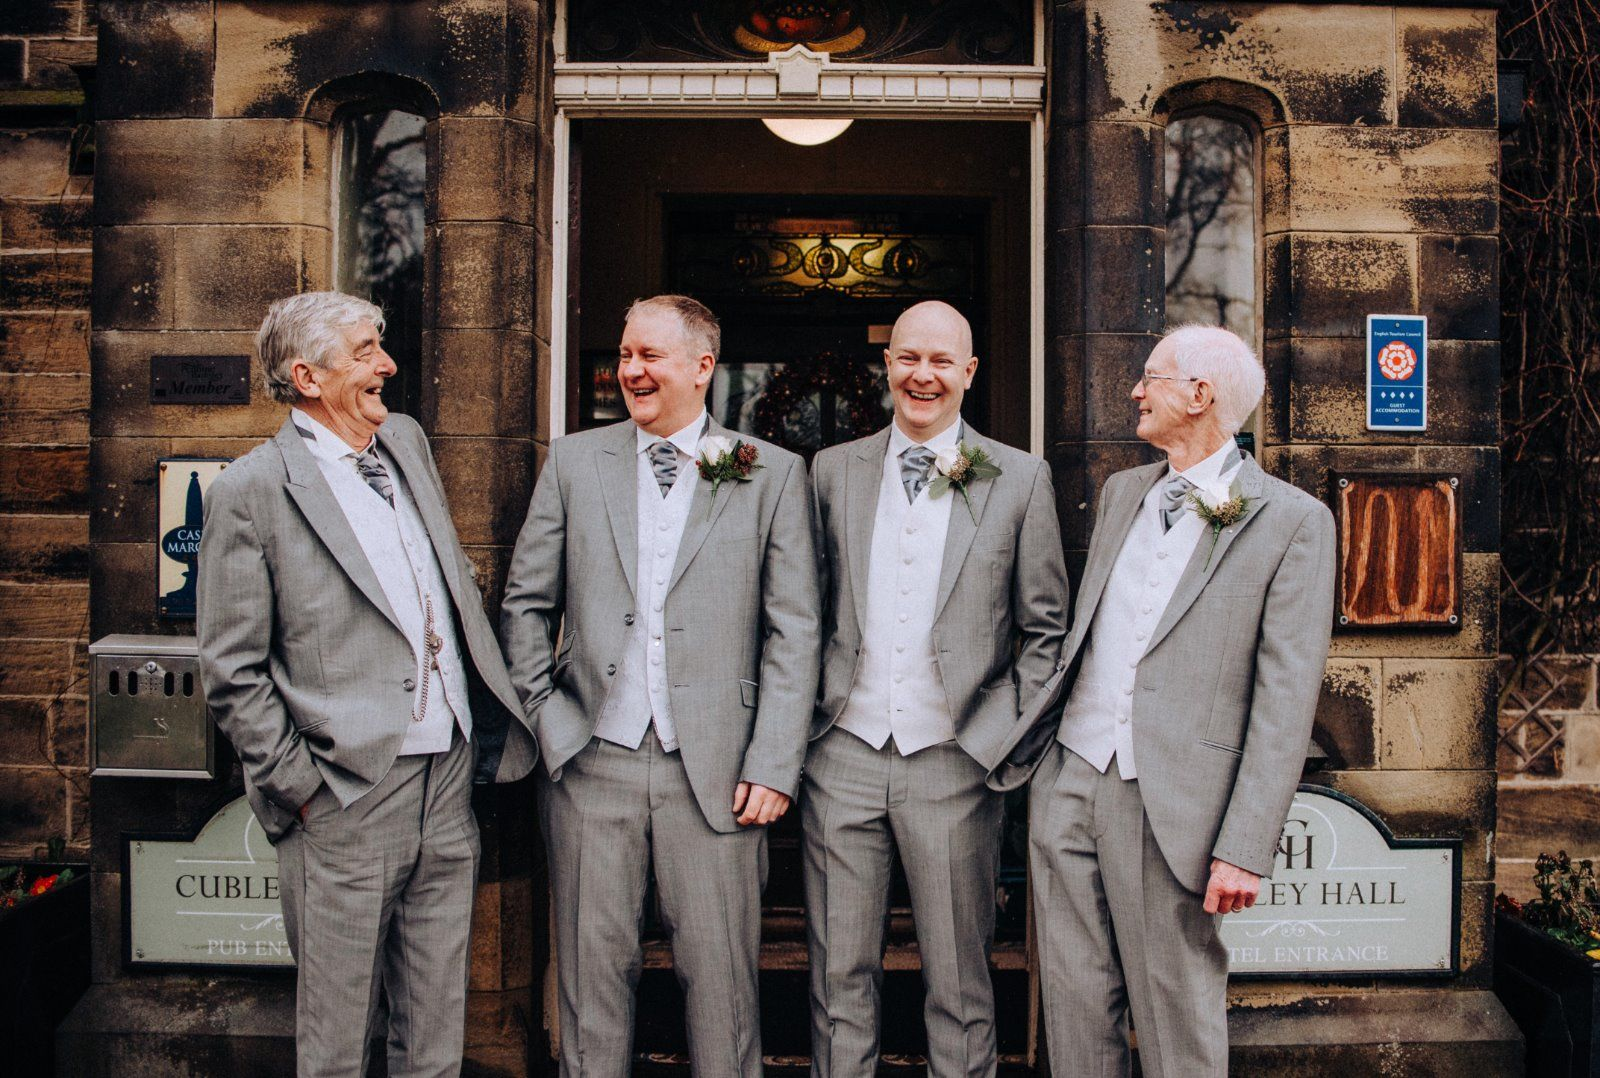 Yorkshire wedding photographer at Cubley Hall